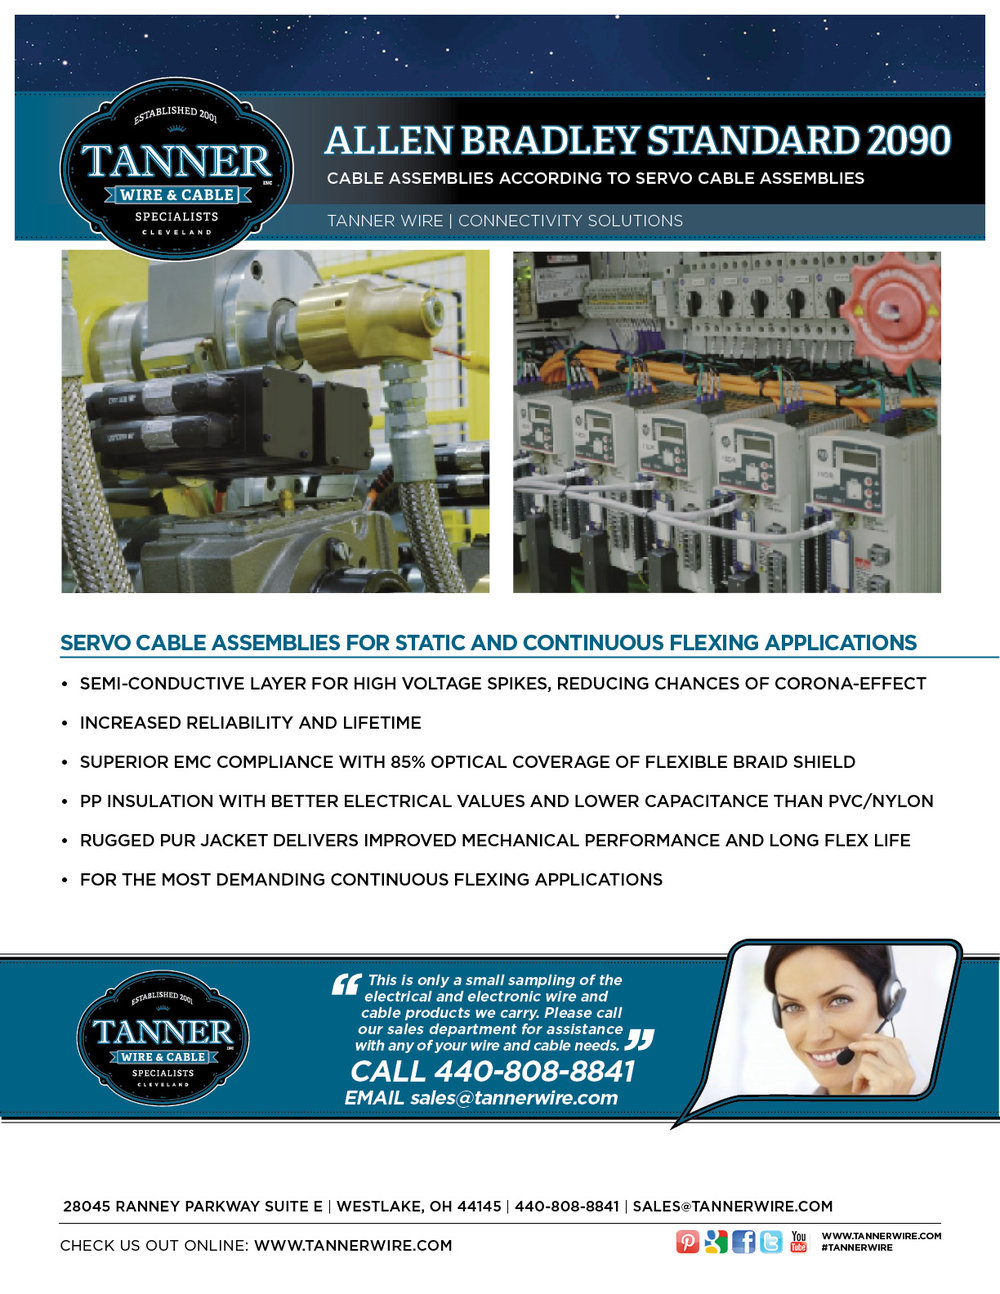 Tanner Inc., Wire & Cable Specialists